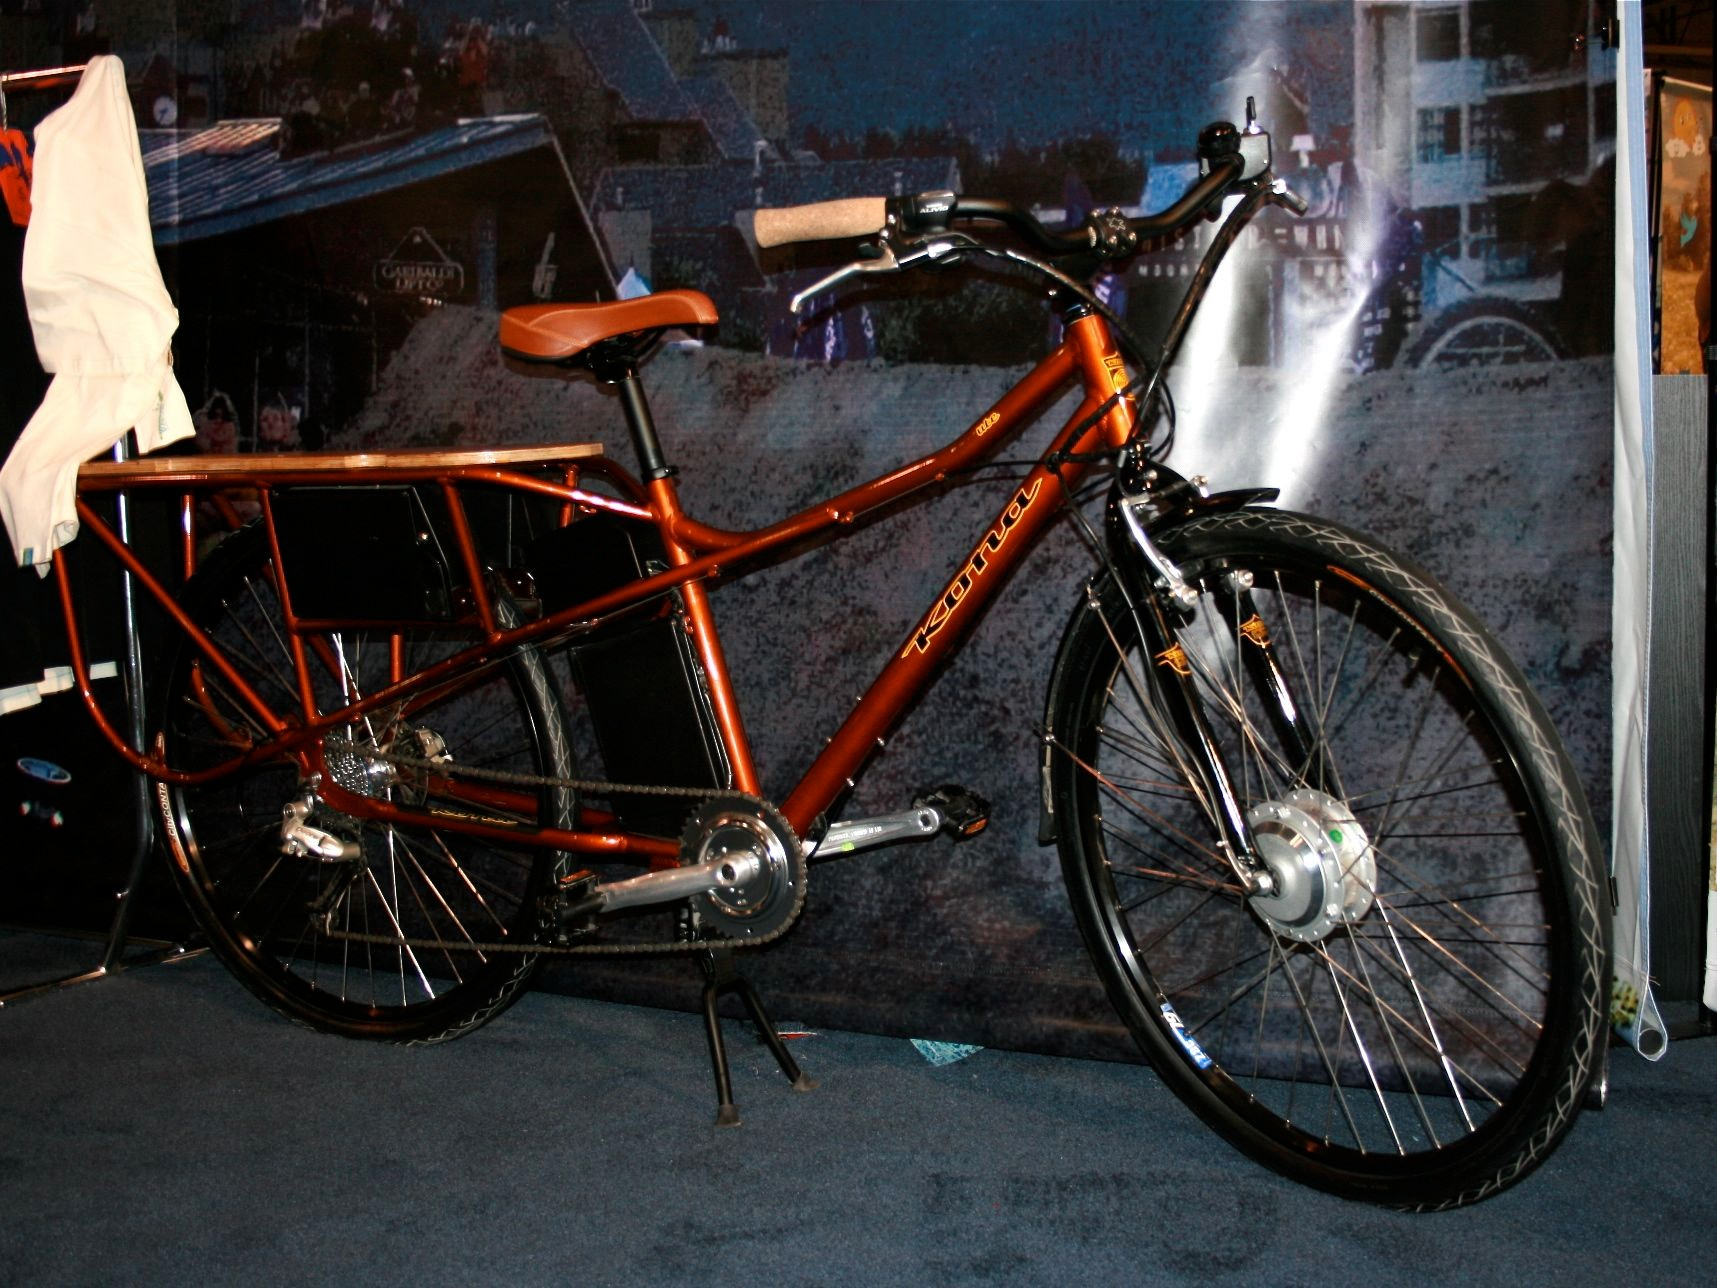 The Kona Ute has been upgraded and retooled for 2009.